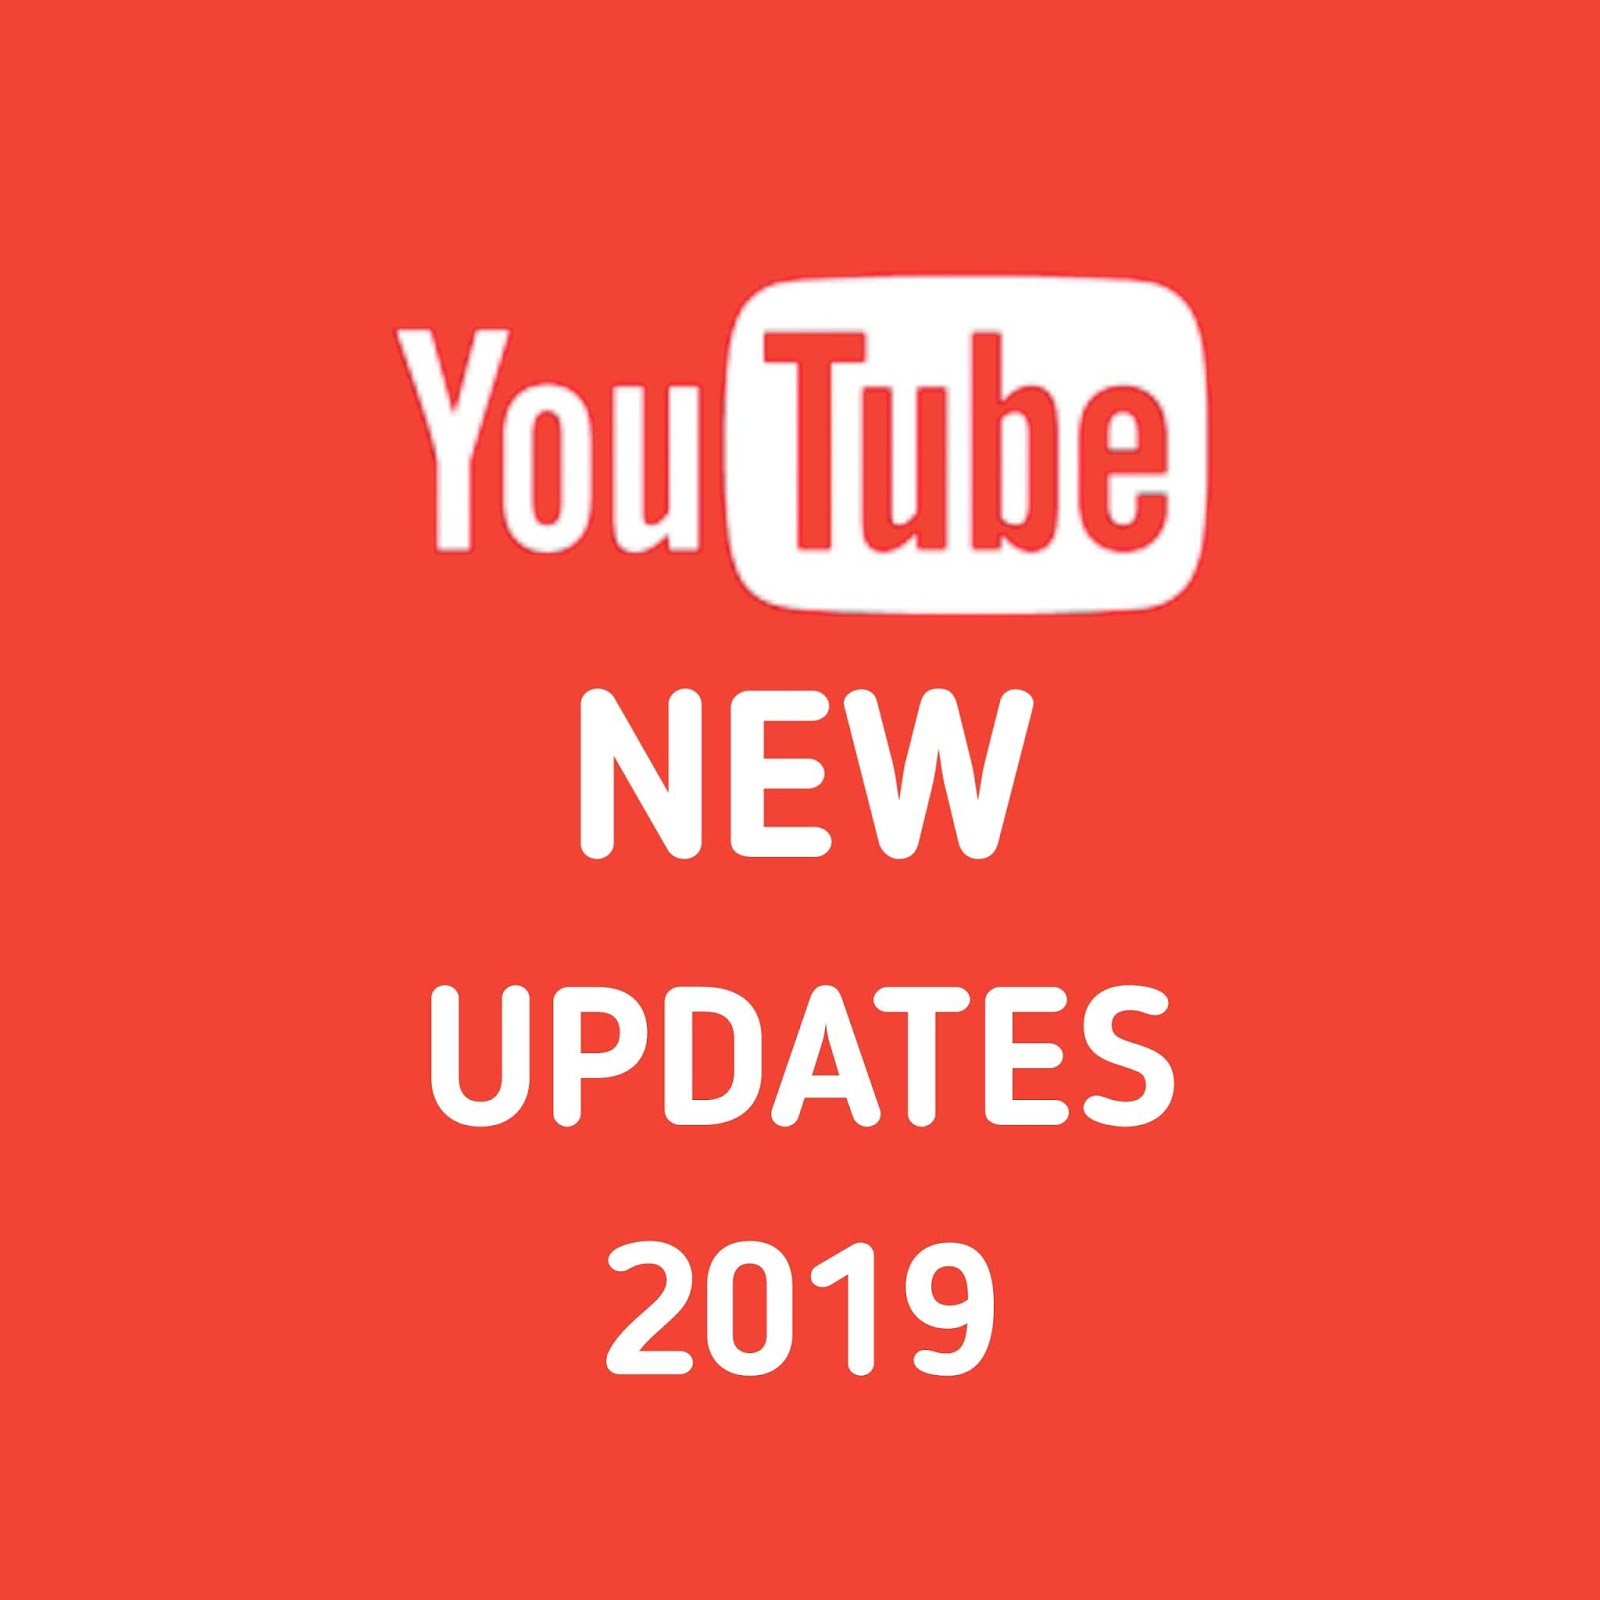 YouTube new updates 2019 | Important Updates in YouTube